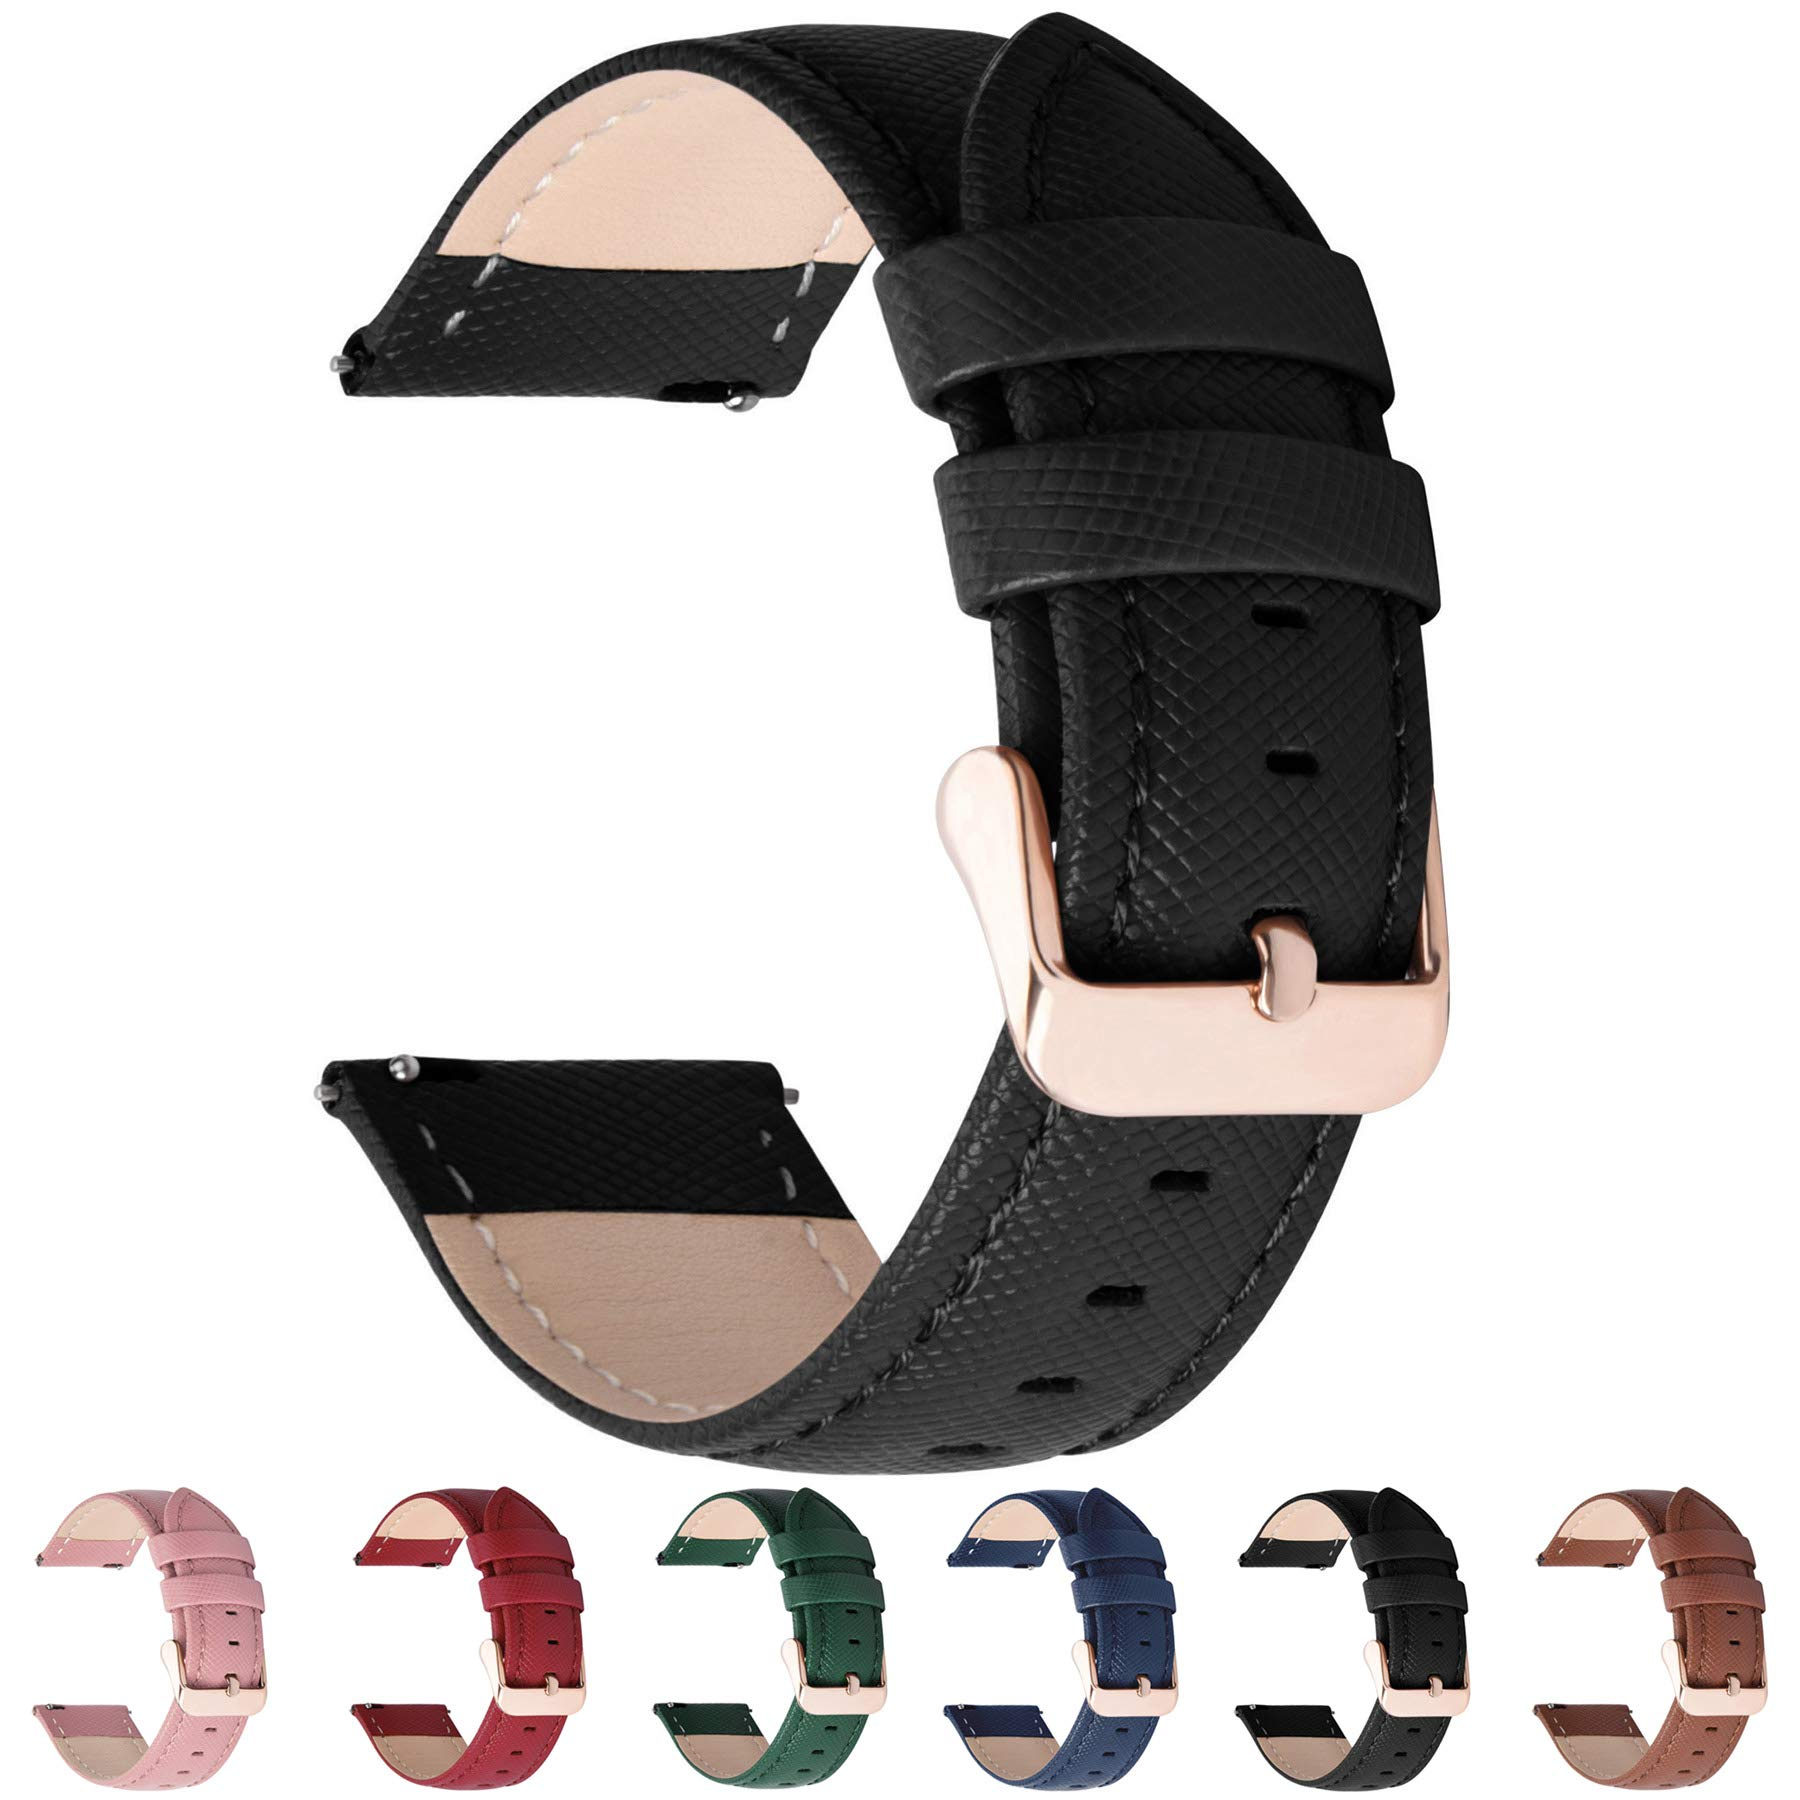 6 Colors for Quick Release Leather Watch Band Fullmosa Cross Genuine Leather Replacement Wrist Strap for Men & Women 14mm 16mm 18mm 20mm 22mm 24mm